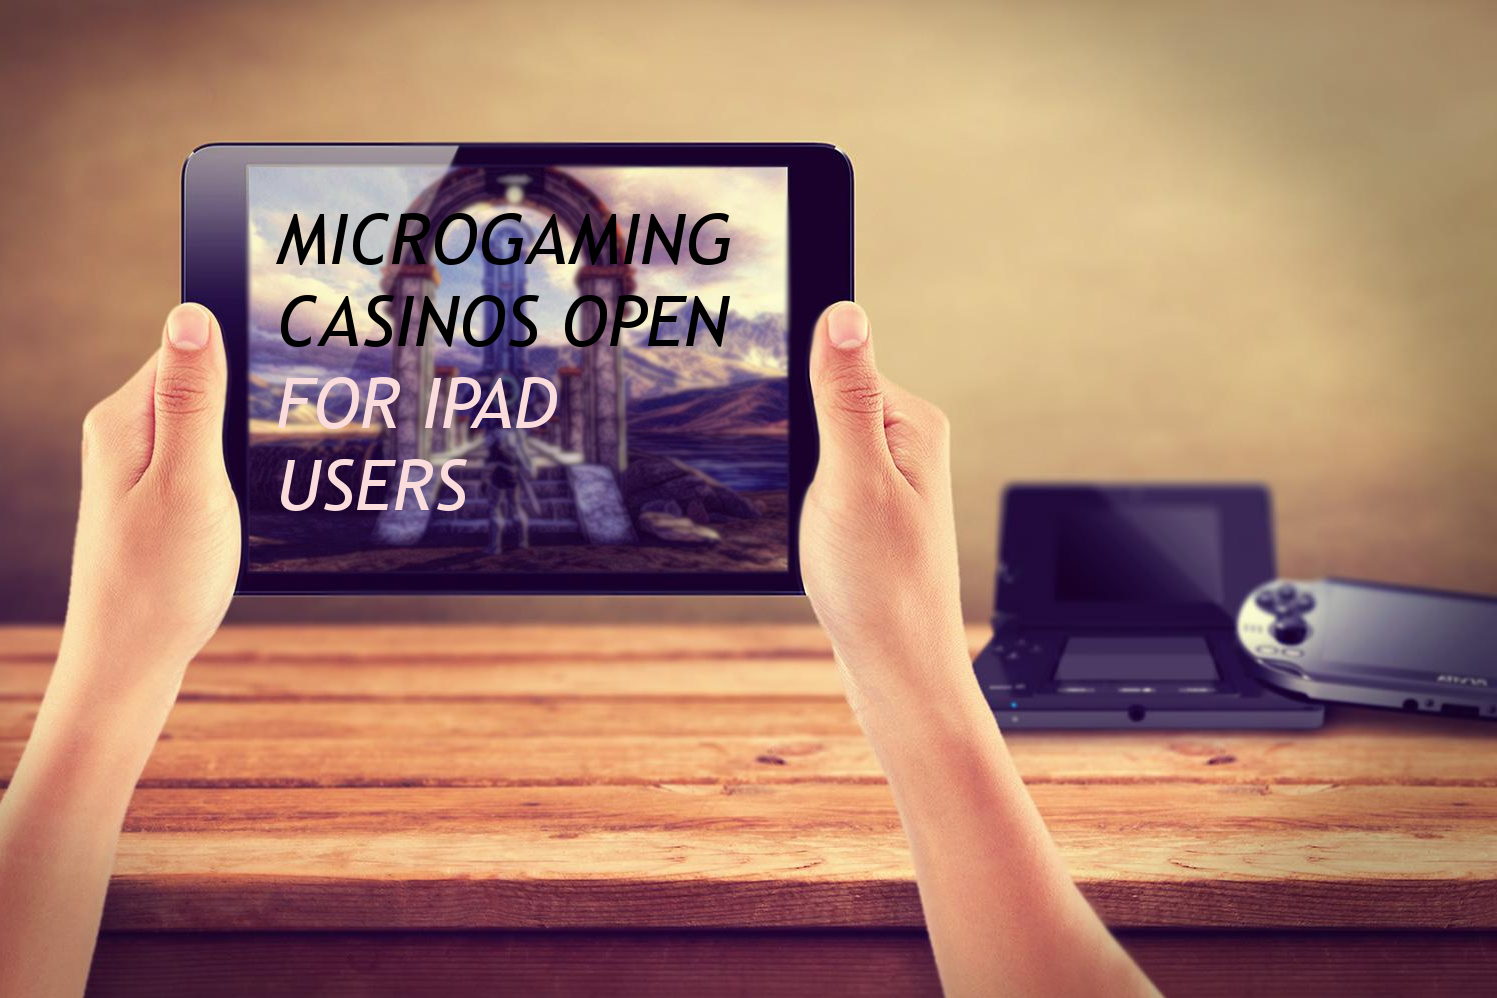 iPad Microgaming Casinos Experince for Cash